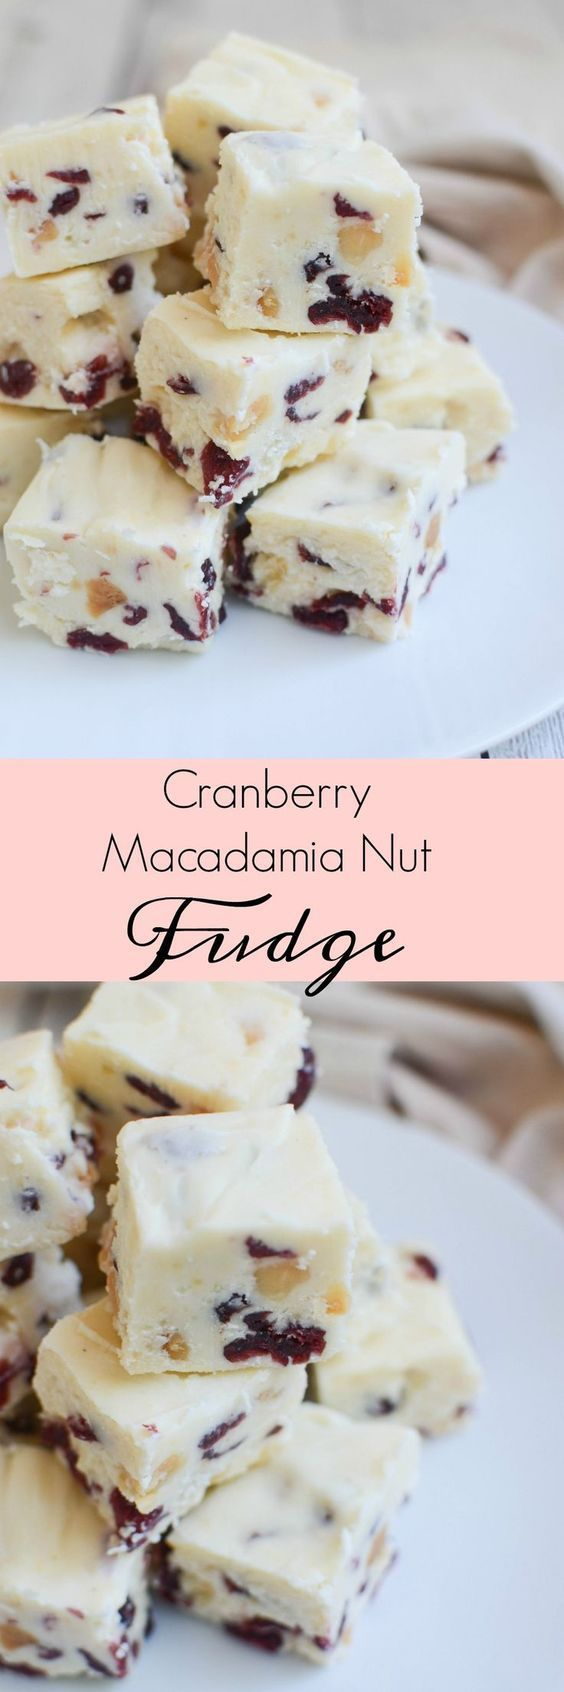 Cranberry Macadamia Nut Fudge - make this easy fudge recipe for your holiday party or cookie swap!